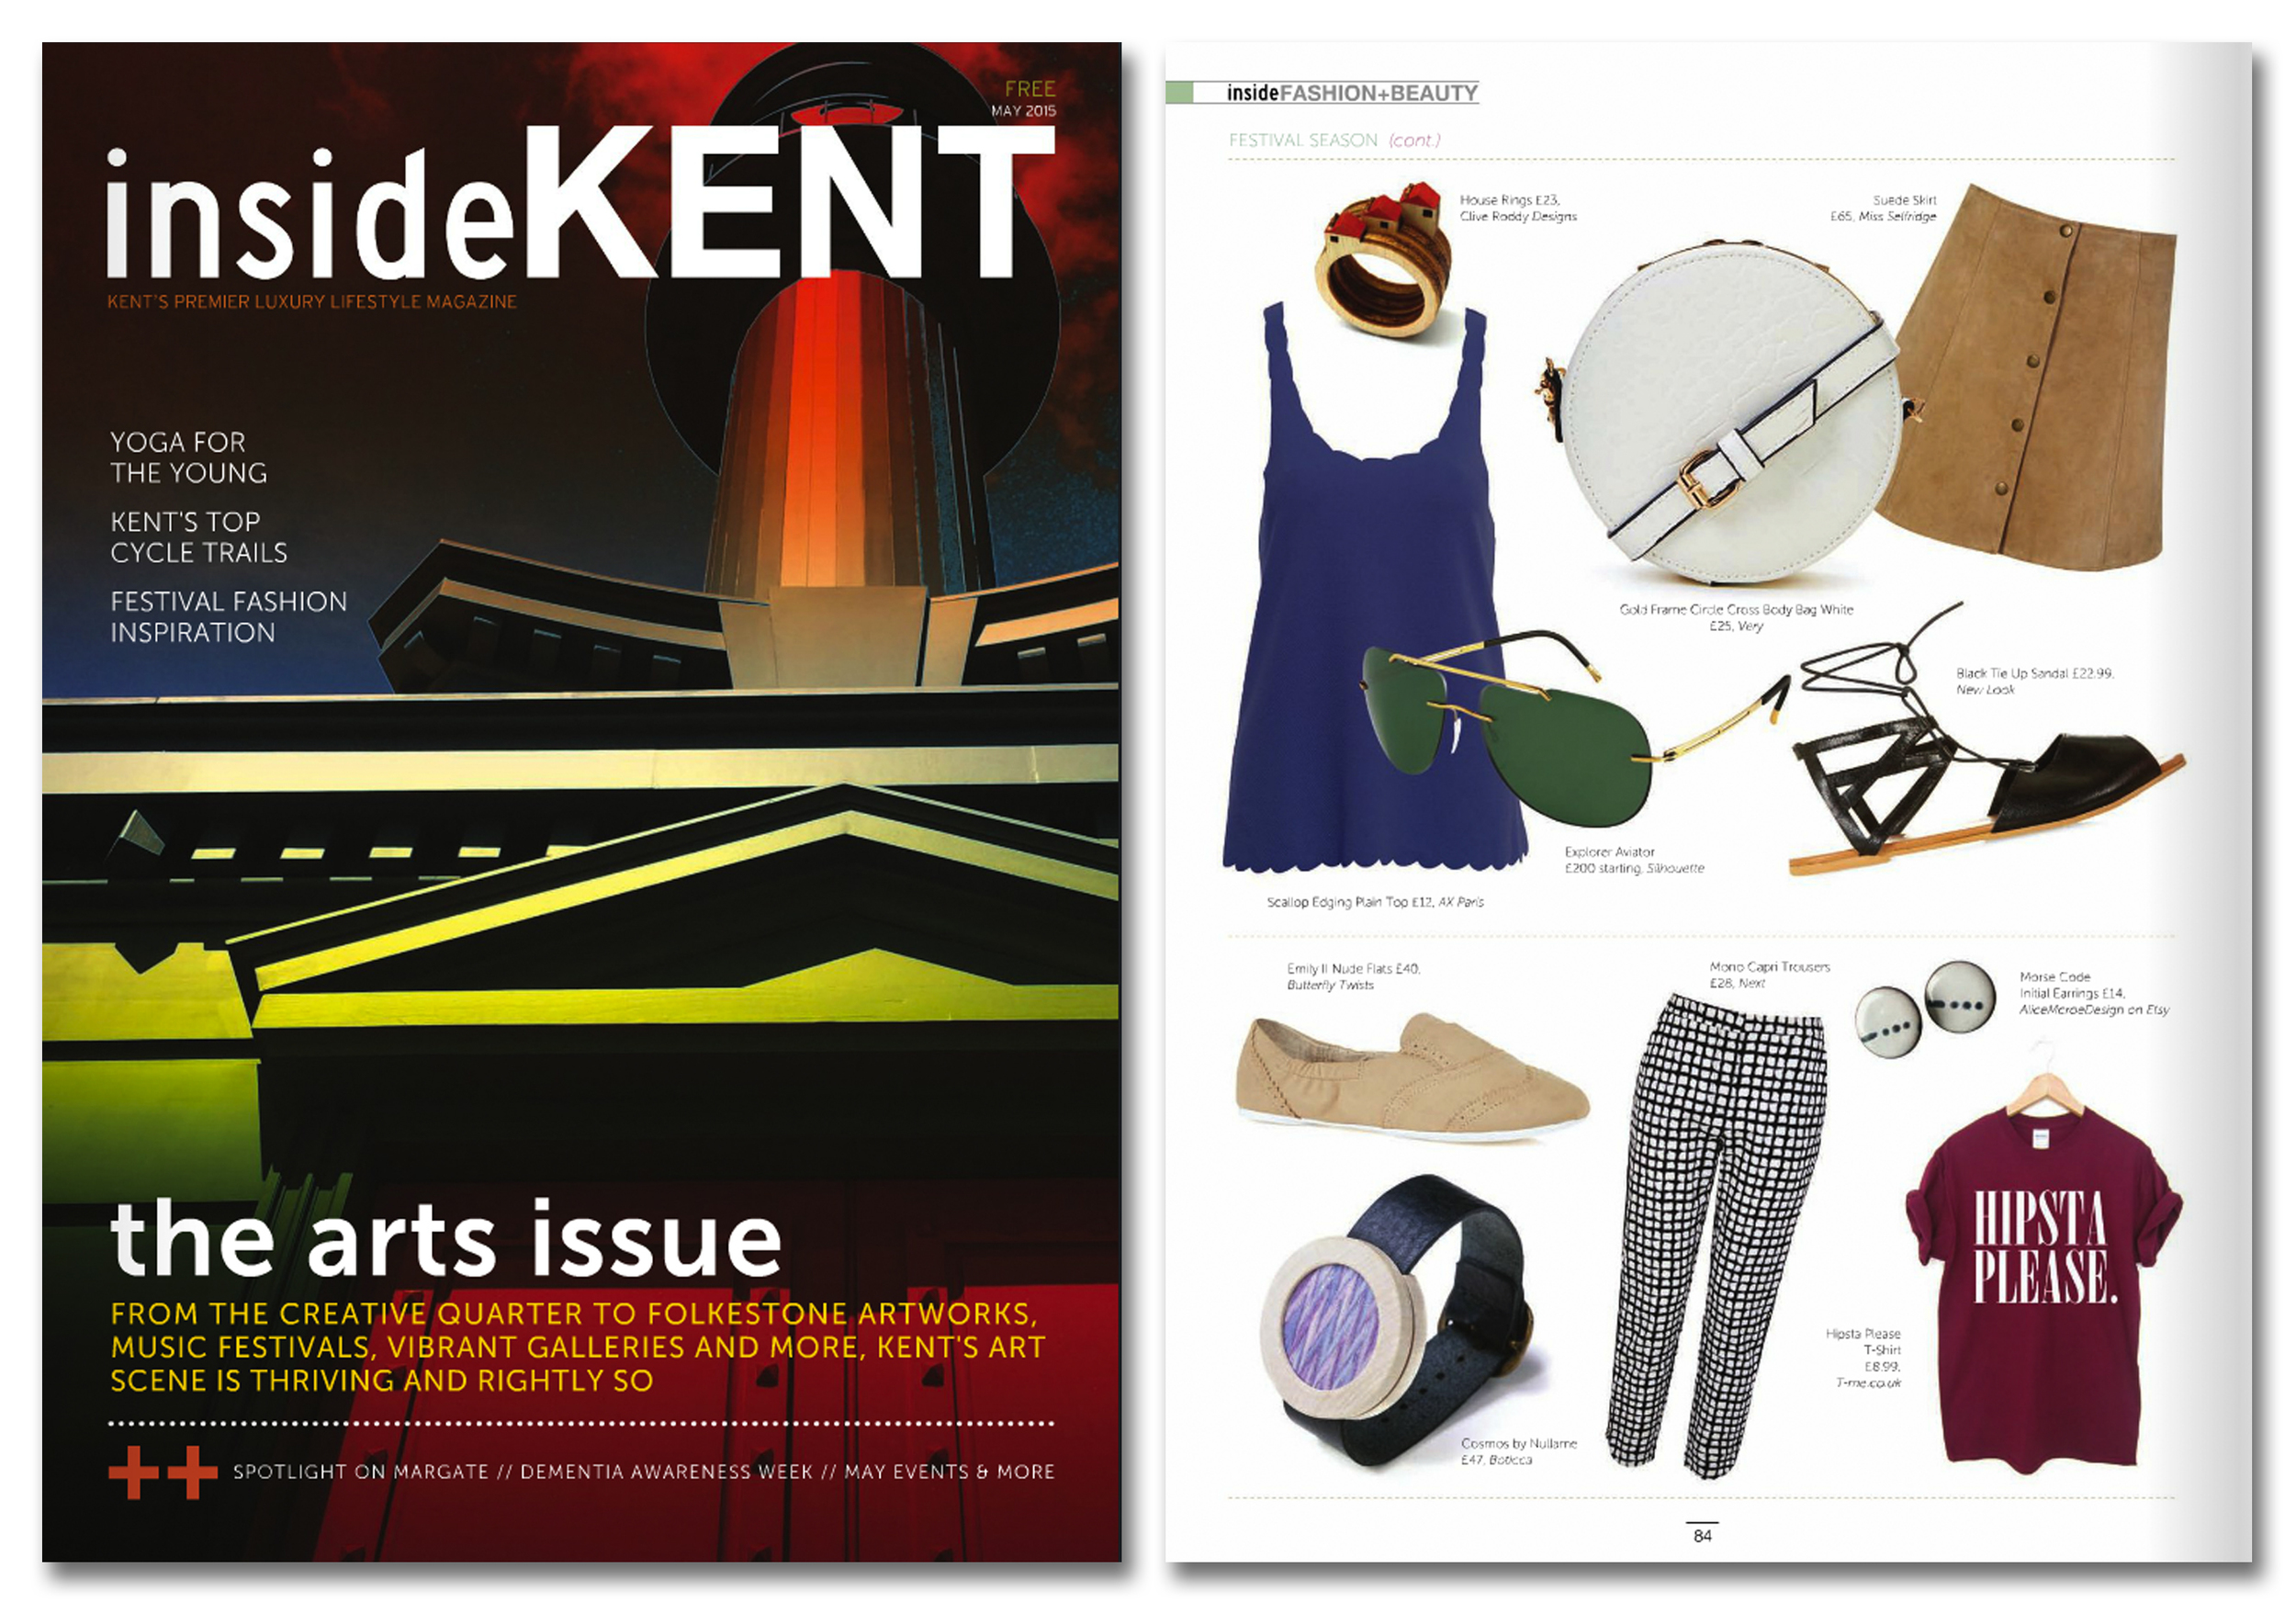 'House Rings' featured in Inside Kent Magazine. Published in May 2015.